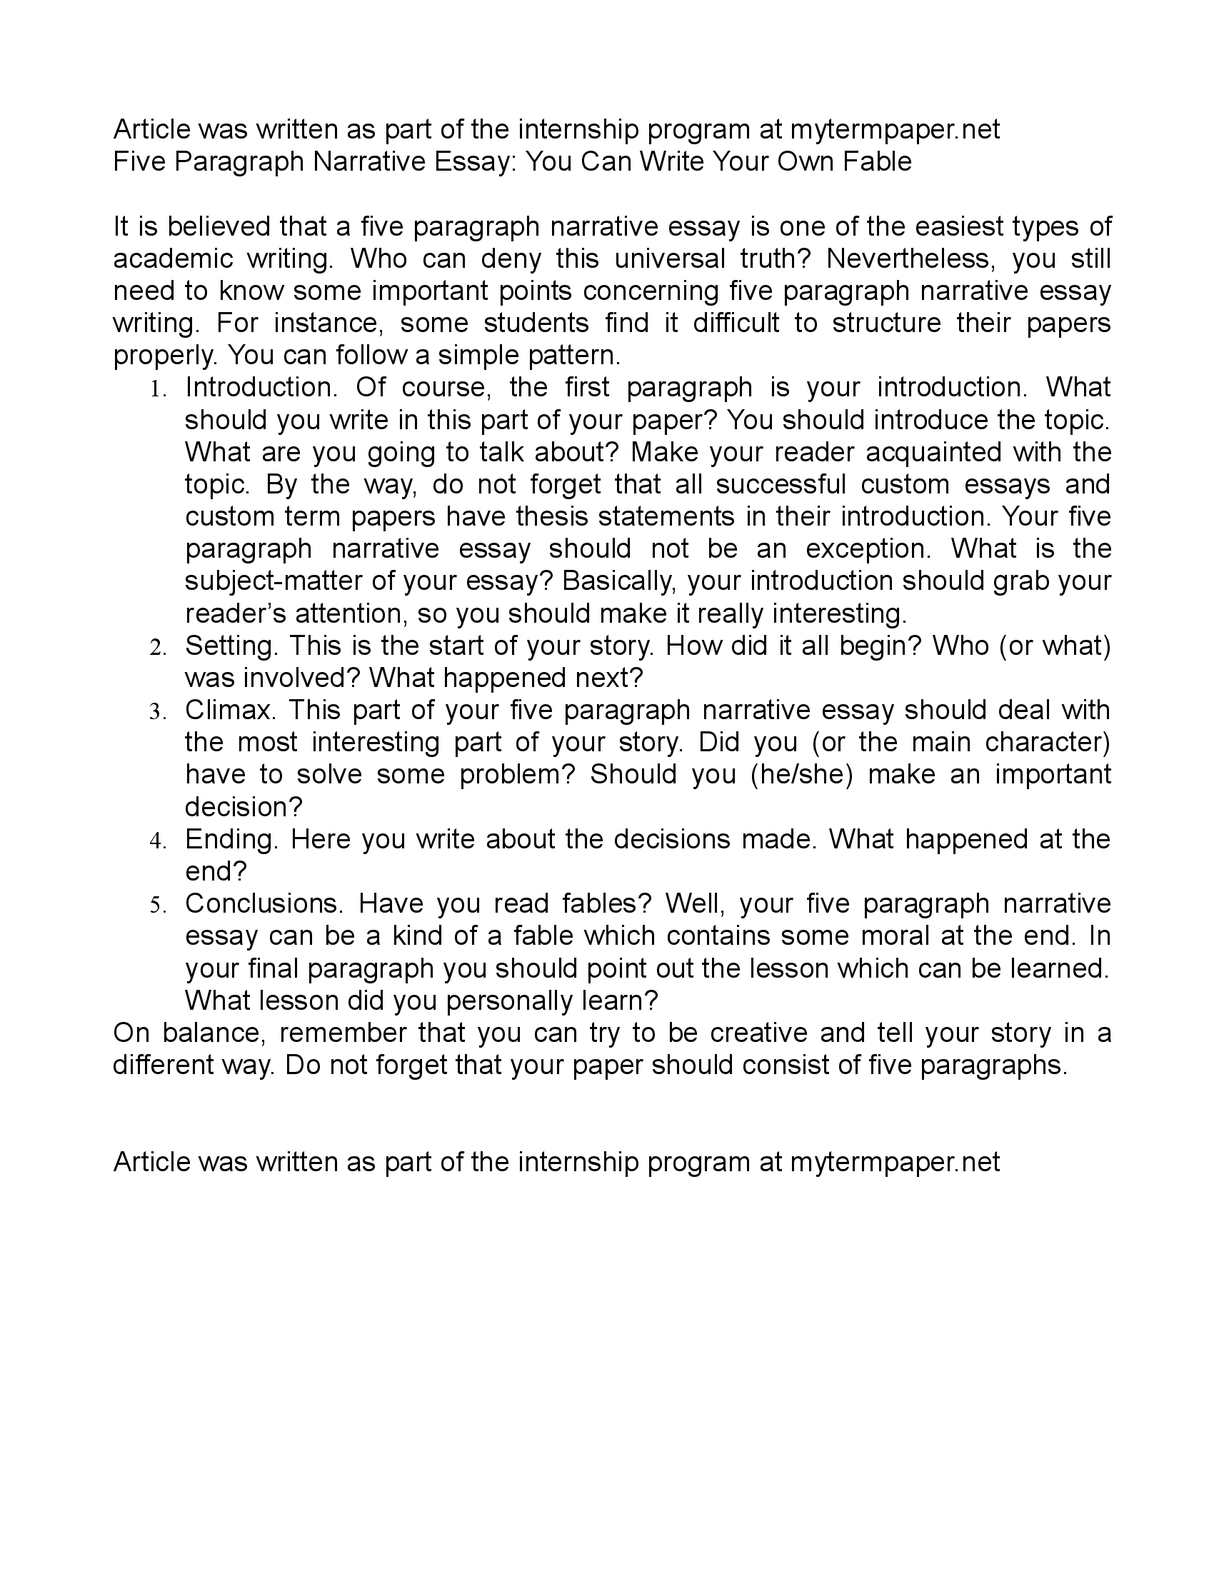 personal narrative essay examples narrative essay topics for calamo five paragraph narrative essay you can write your own fable personal narrative essay examples